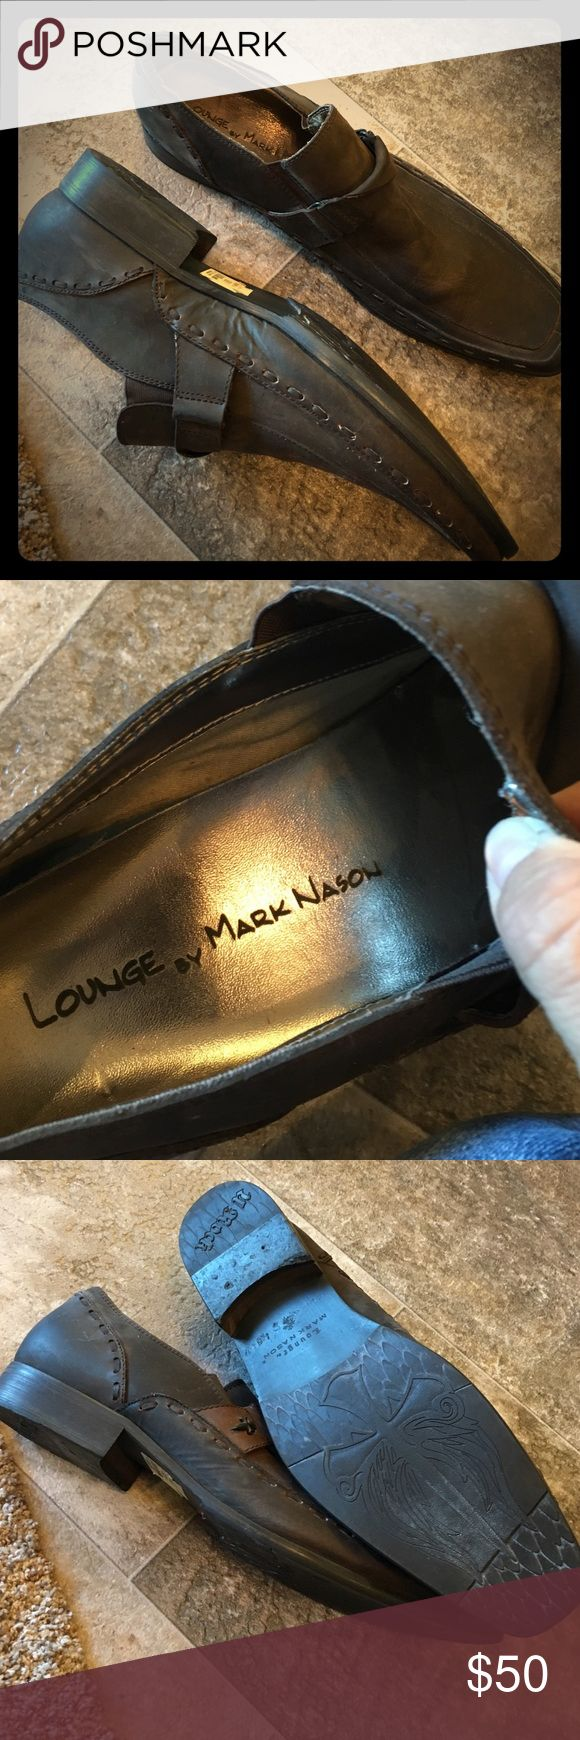 Awesome men's shoes Lounge by mark basin size 13 worn once. Excellent t condition Shoes Loafers & Slip-Ons